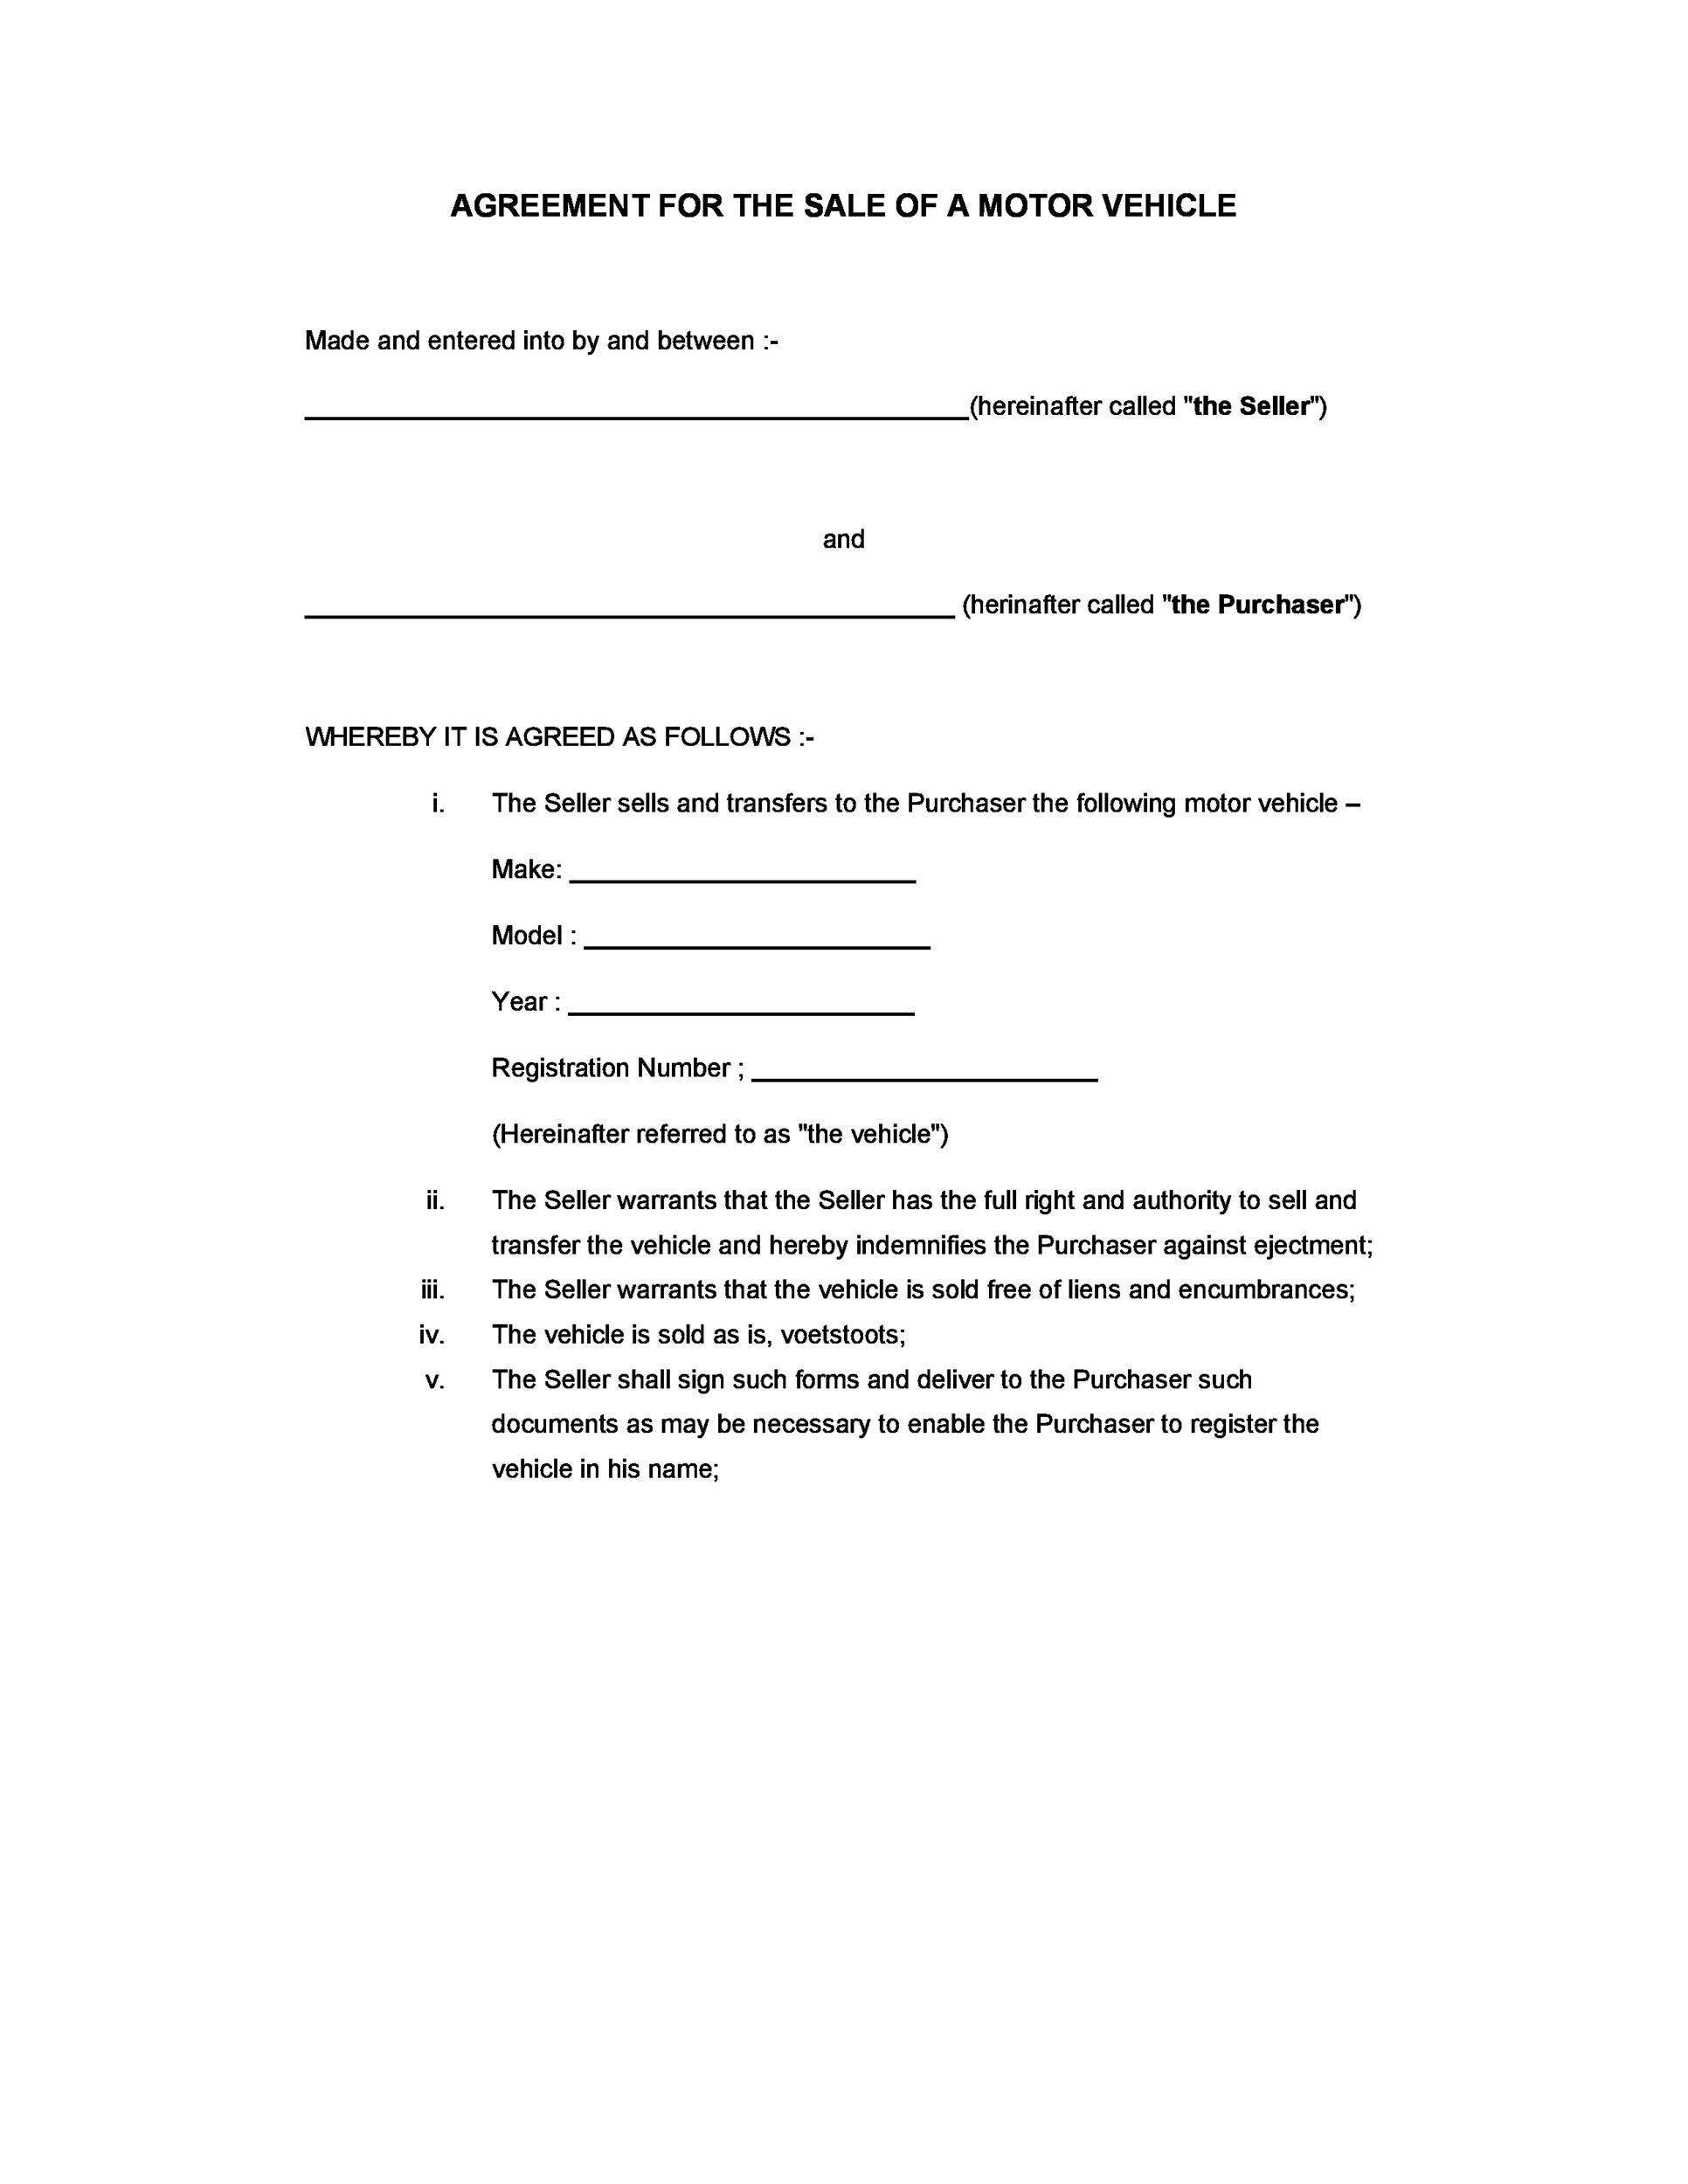 42 Printable Vehicle Purchase Agreement Templates ᐅ